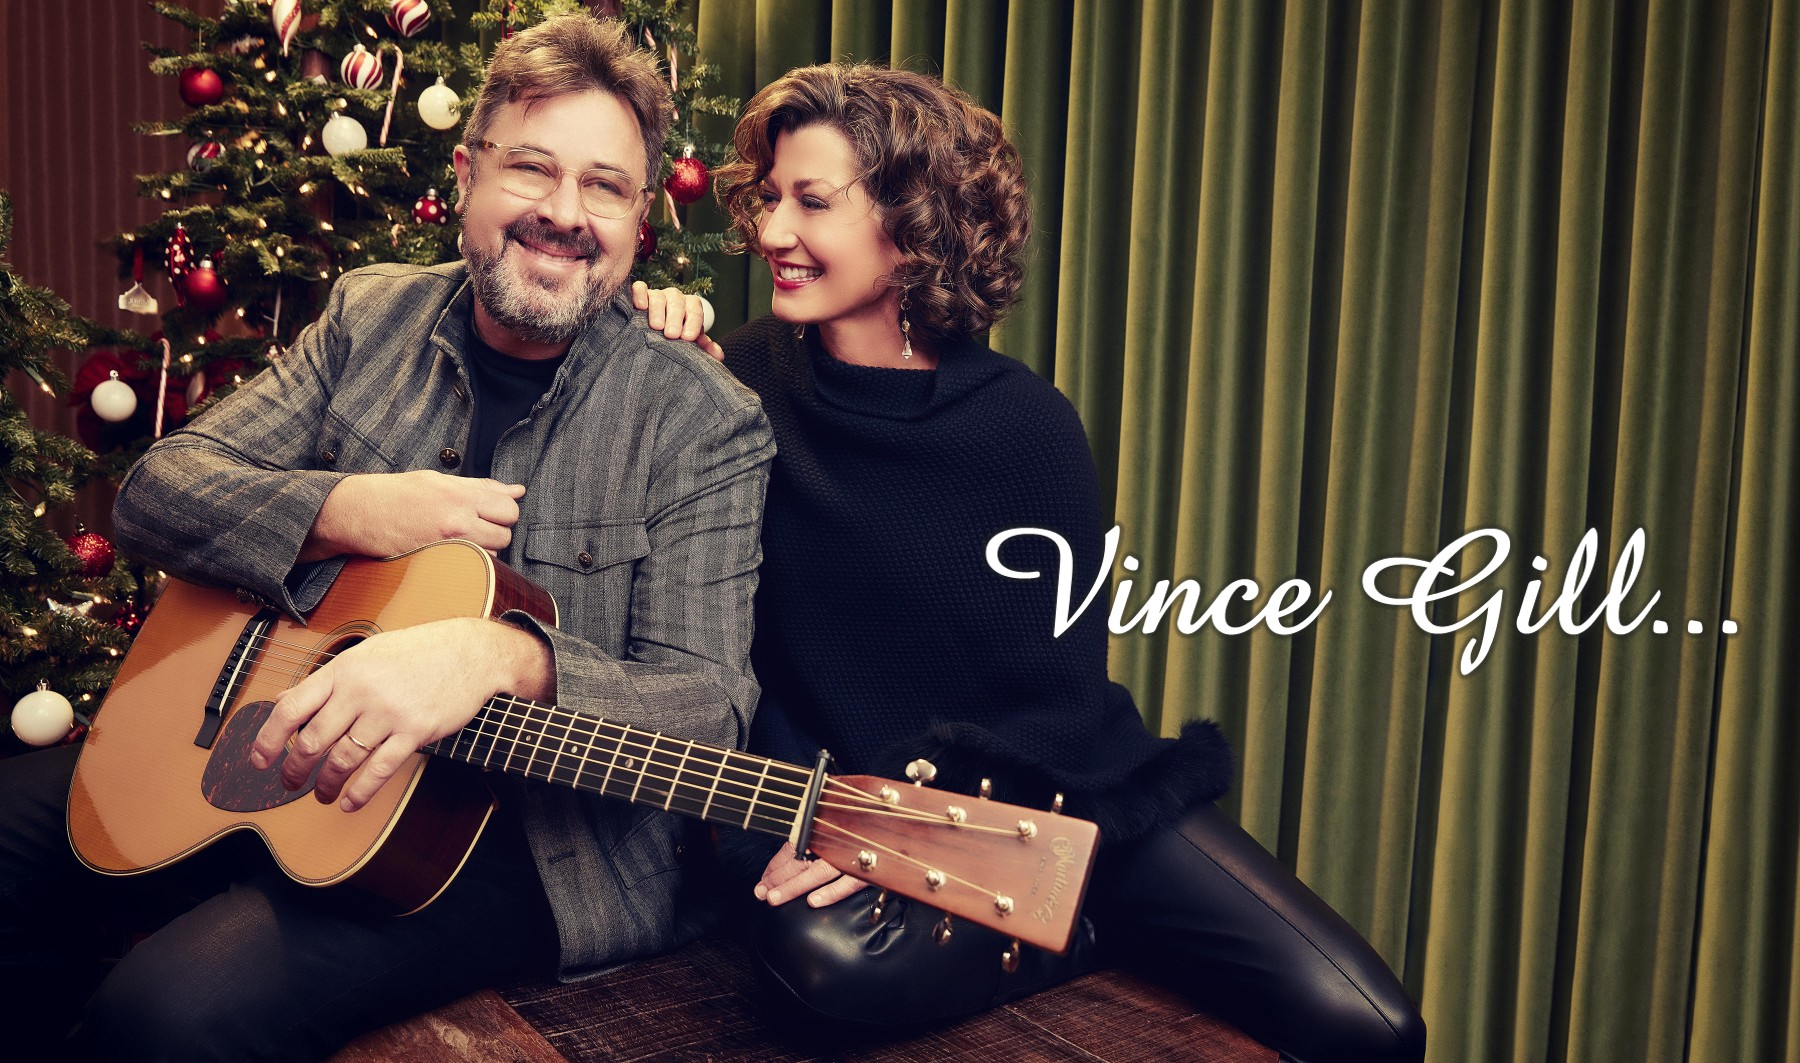 Strictly Country Vince Gill Christmas title